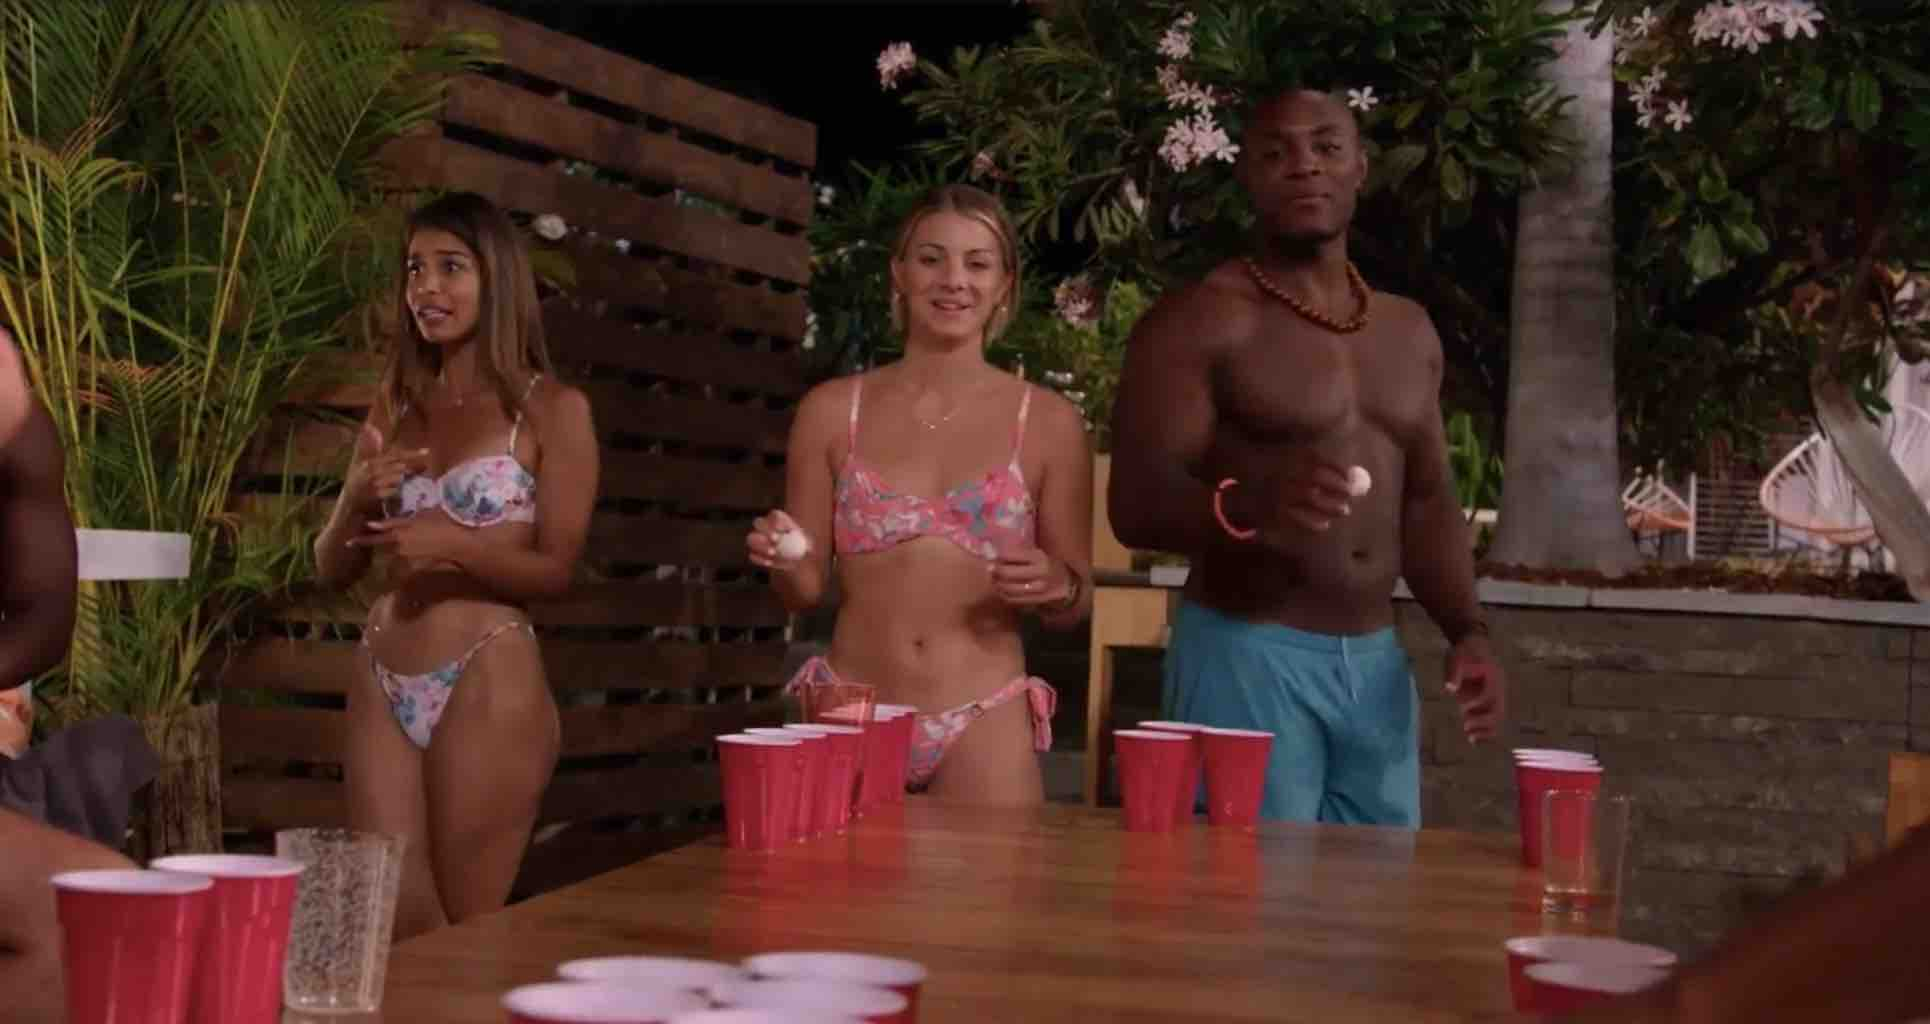 Temptation Island Season 3 Episode Recap: He's Been A Bad Boy